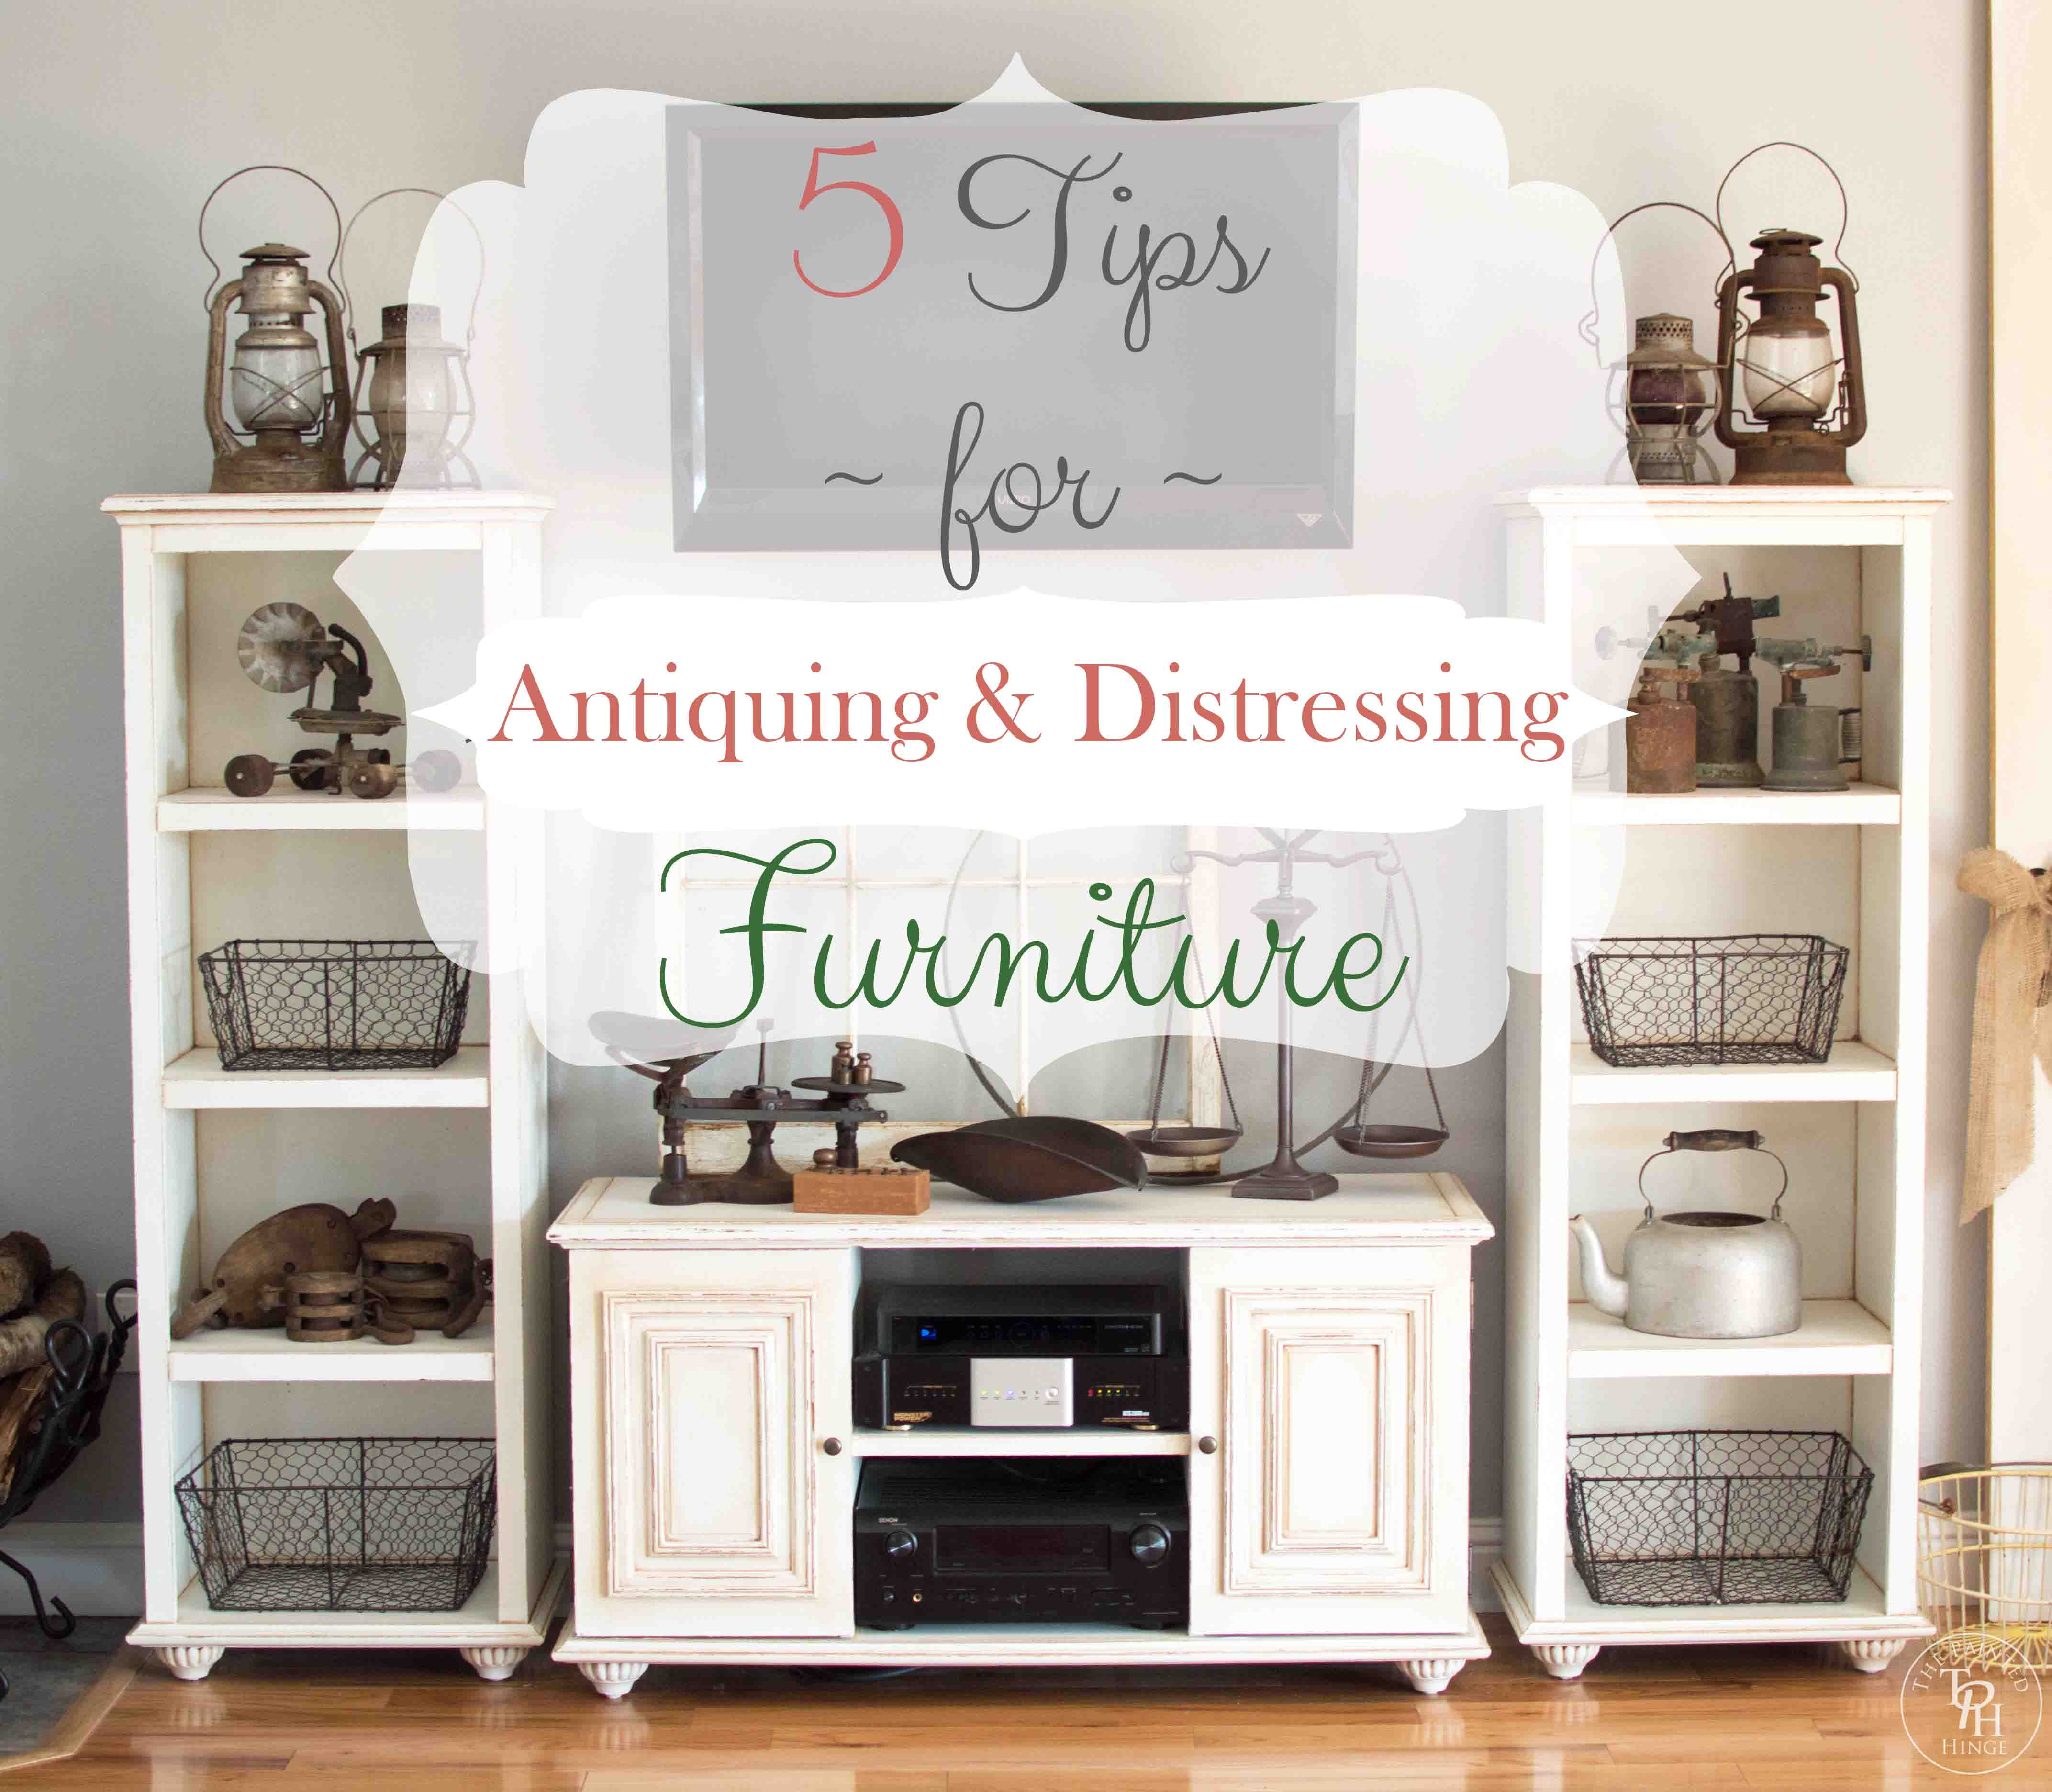 5 Tips for Antiquing amp Distressing Furniture